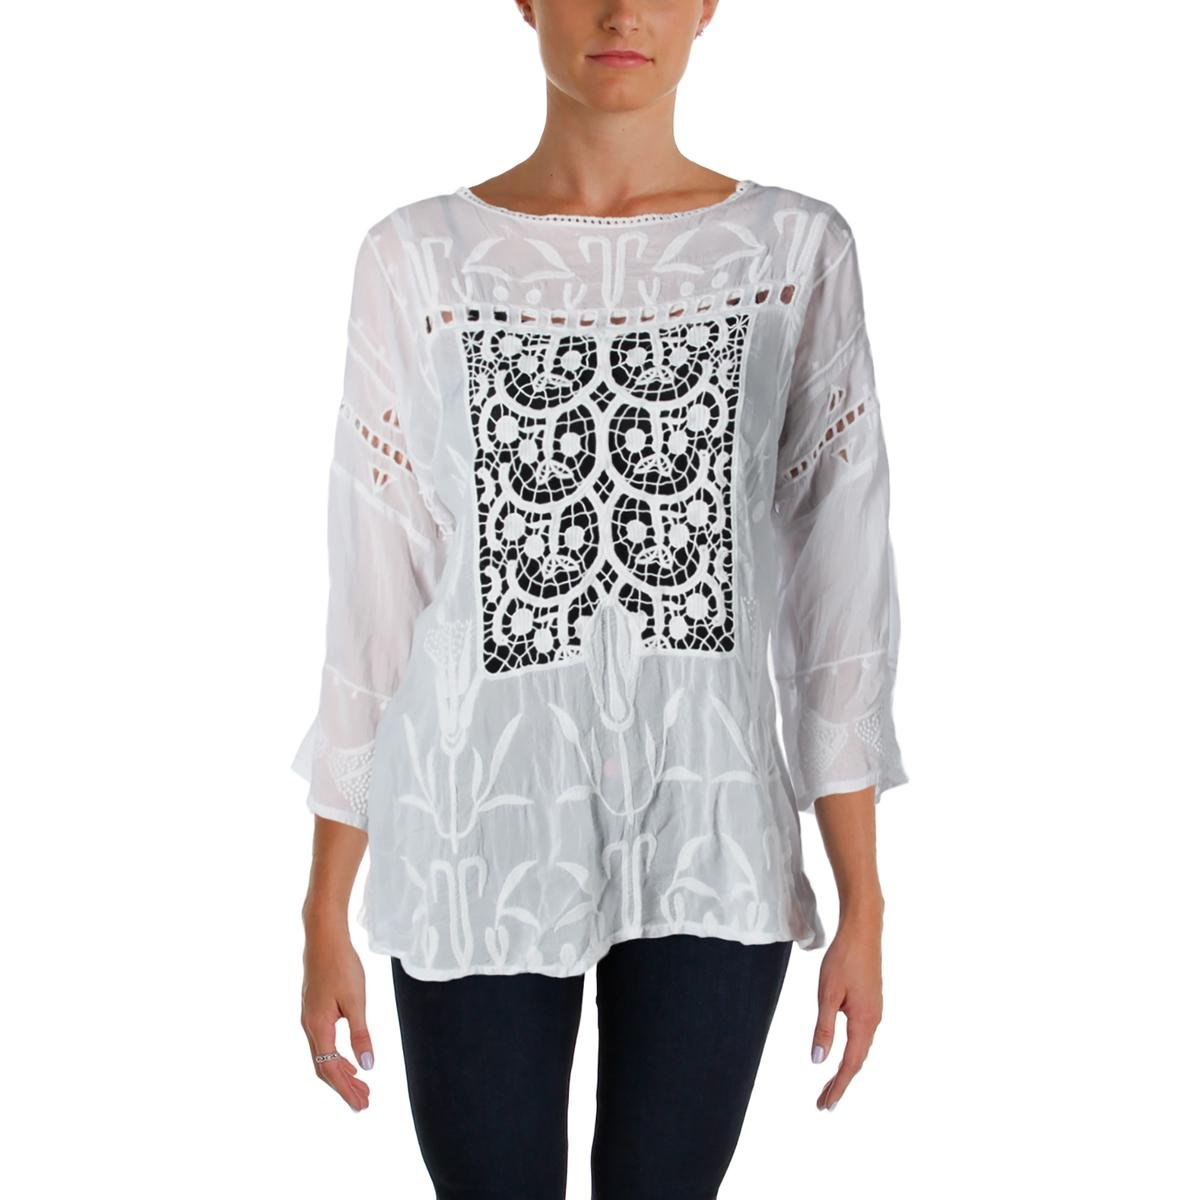 Johnny Was Womens Battenburg Lace Embroidered Casual Top White M by Johnny Was (Image #1)